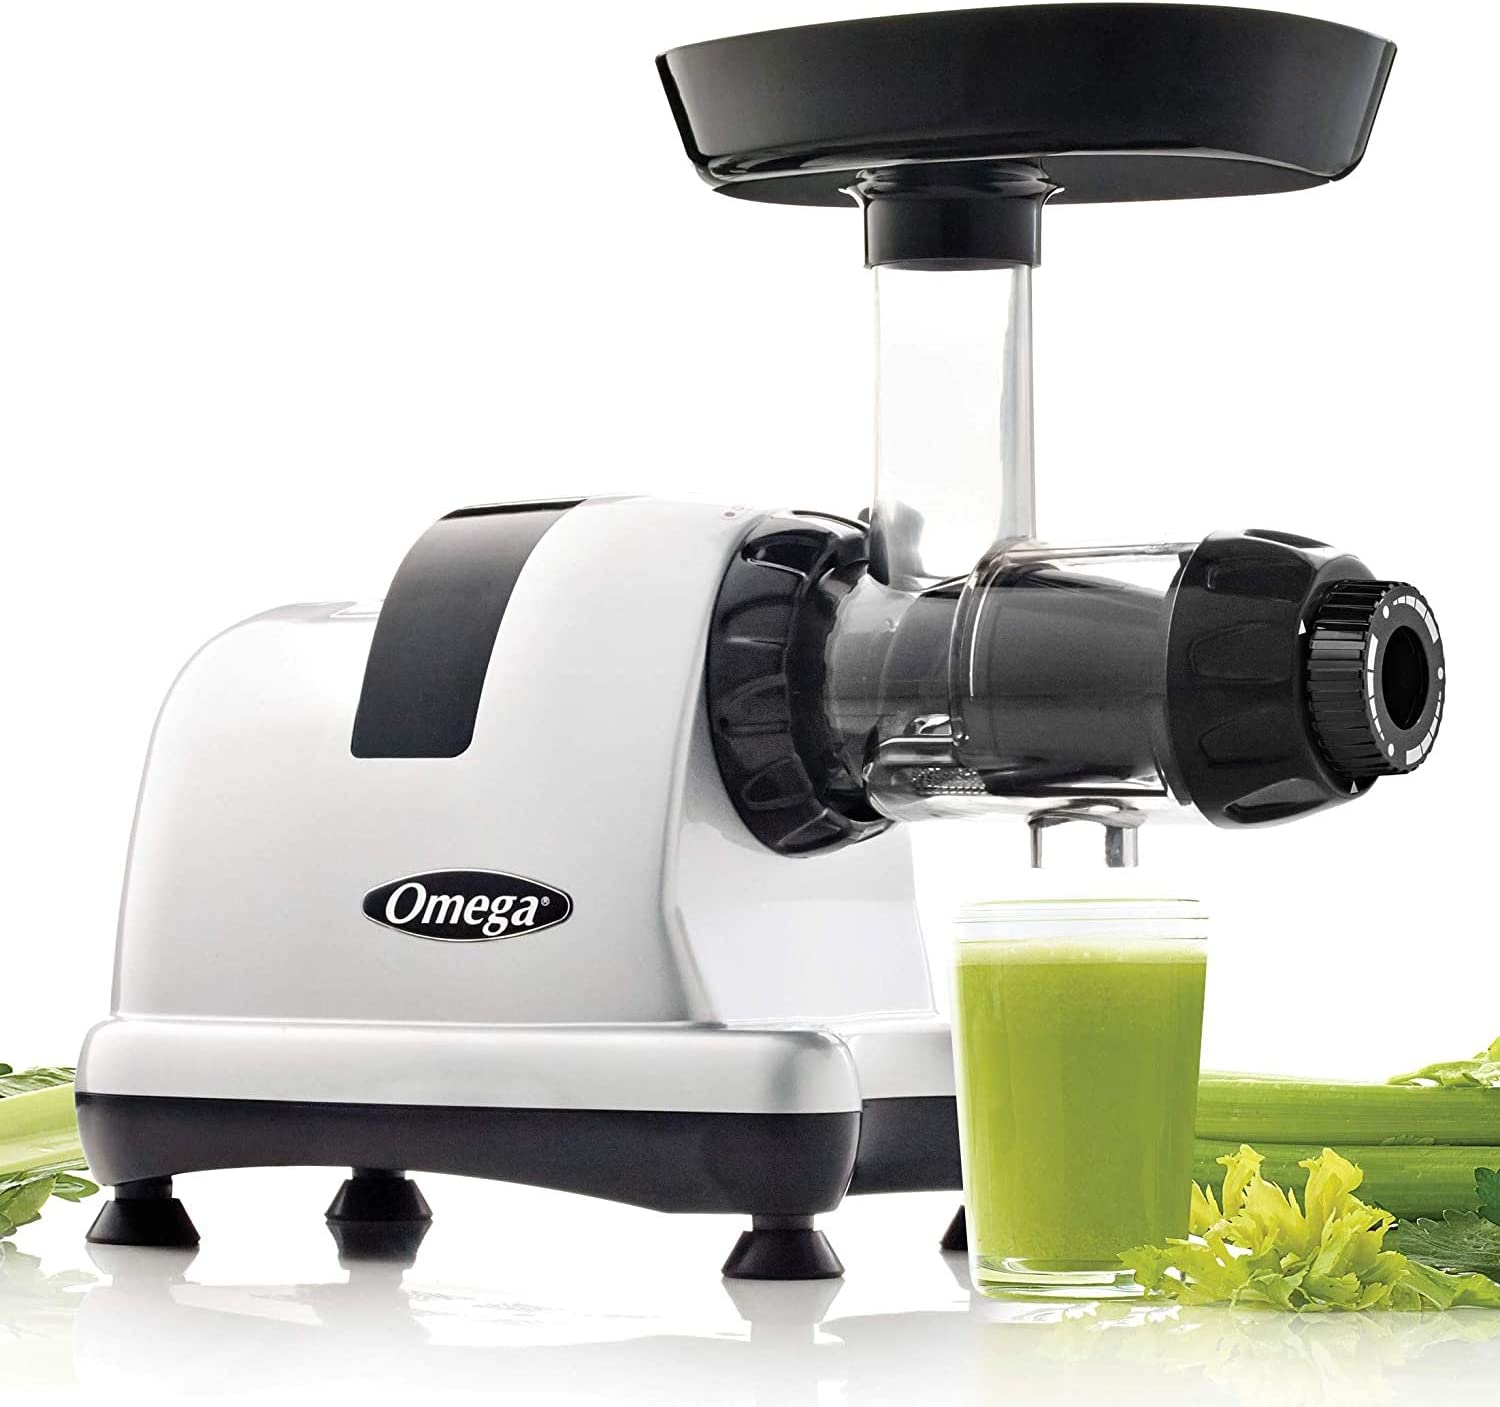 Omega slow masticating celery juicer: best masticating juicers 2021